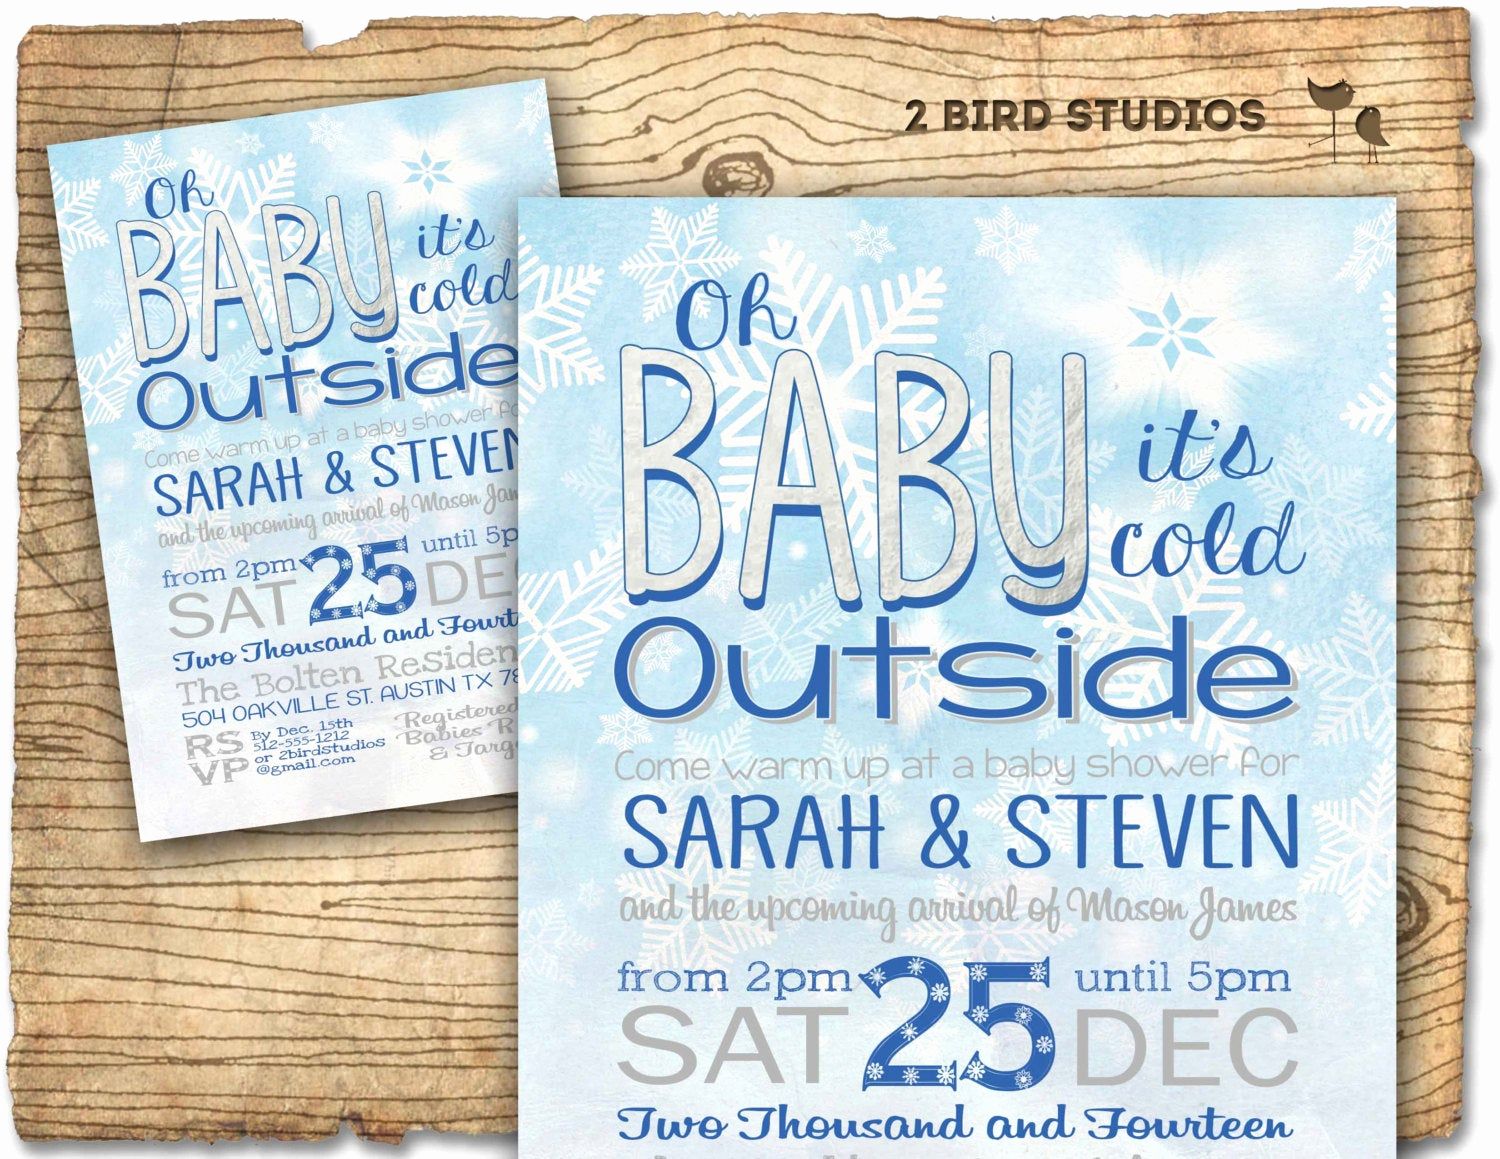 Winter Baby Shower Invitation Inspirational Winter Baby Shower Invitation Coed Winter Baby Shower Boy